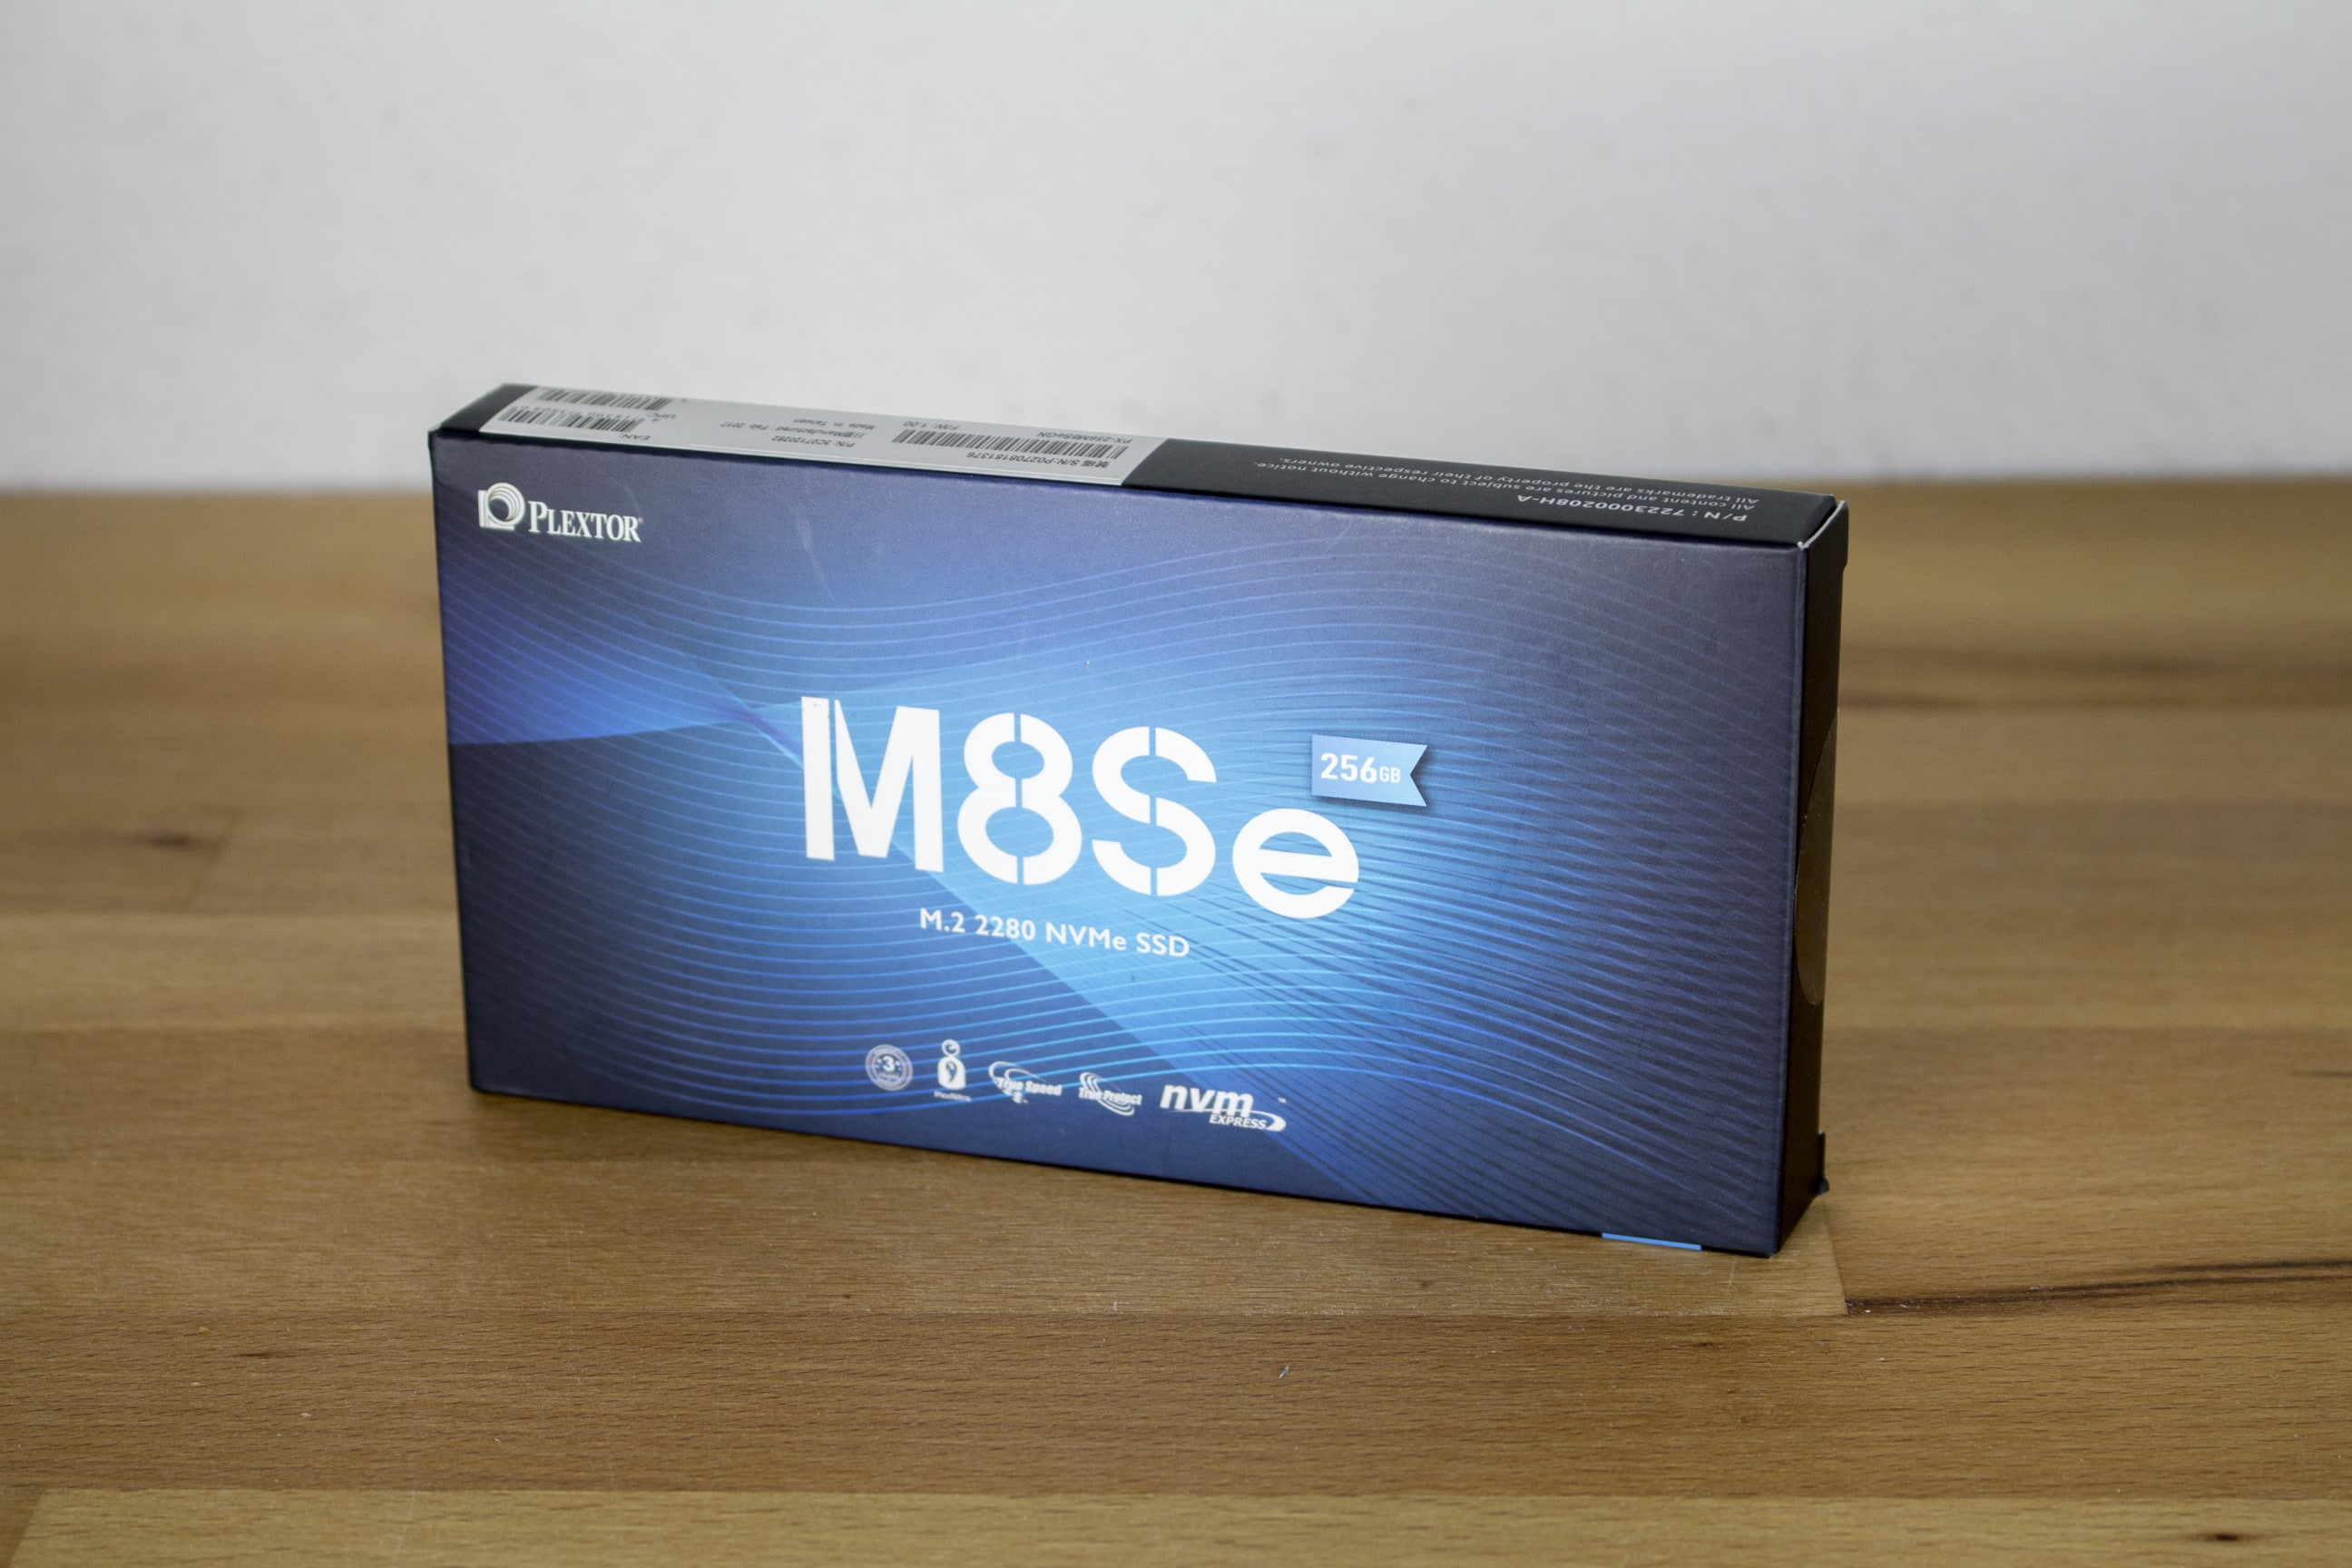 Photo of Plextor M8SeGN SSD 256 GB (PX-256M8SeGN) Review